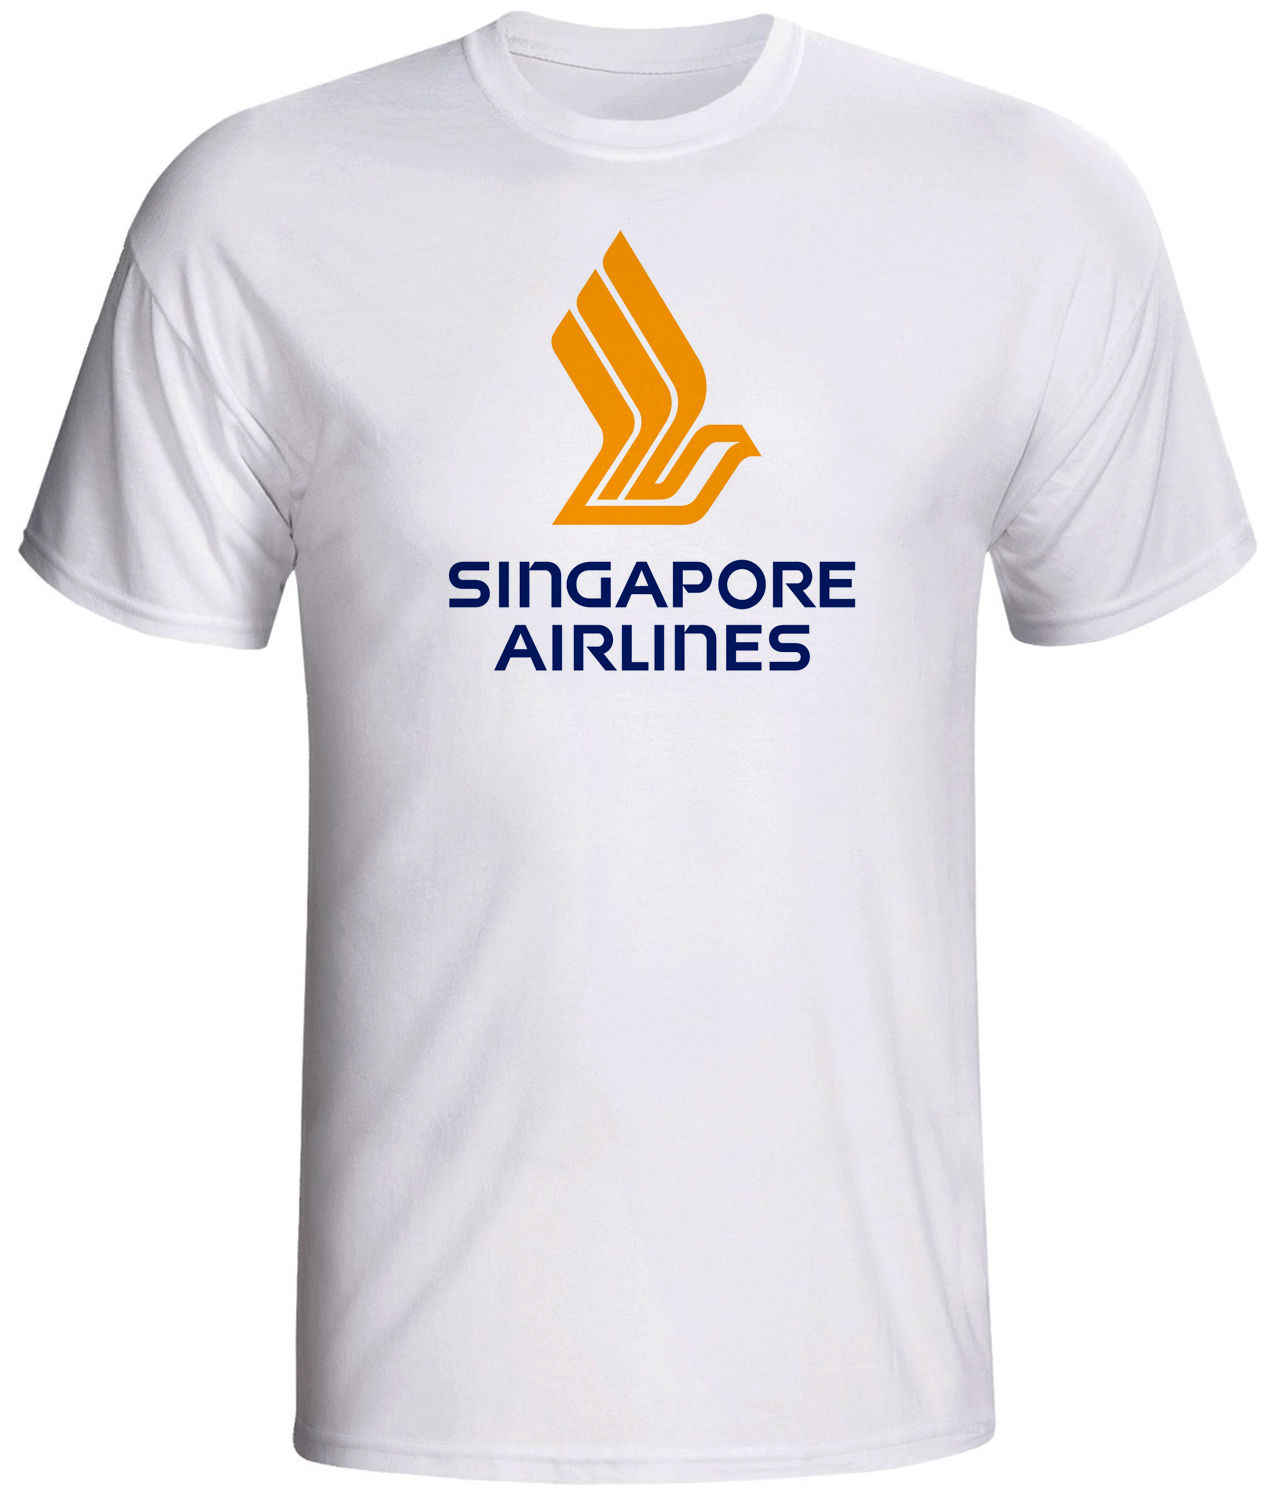 singapore airlines shirt vintage retro Summer Men'S fashion Tee,Comfortable t shirt,Casual Short Sleeve TEE 2019 hot tees